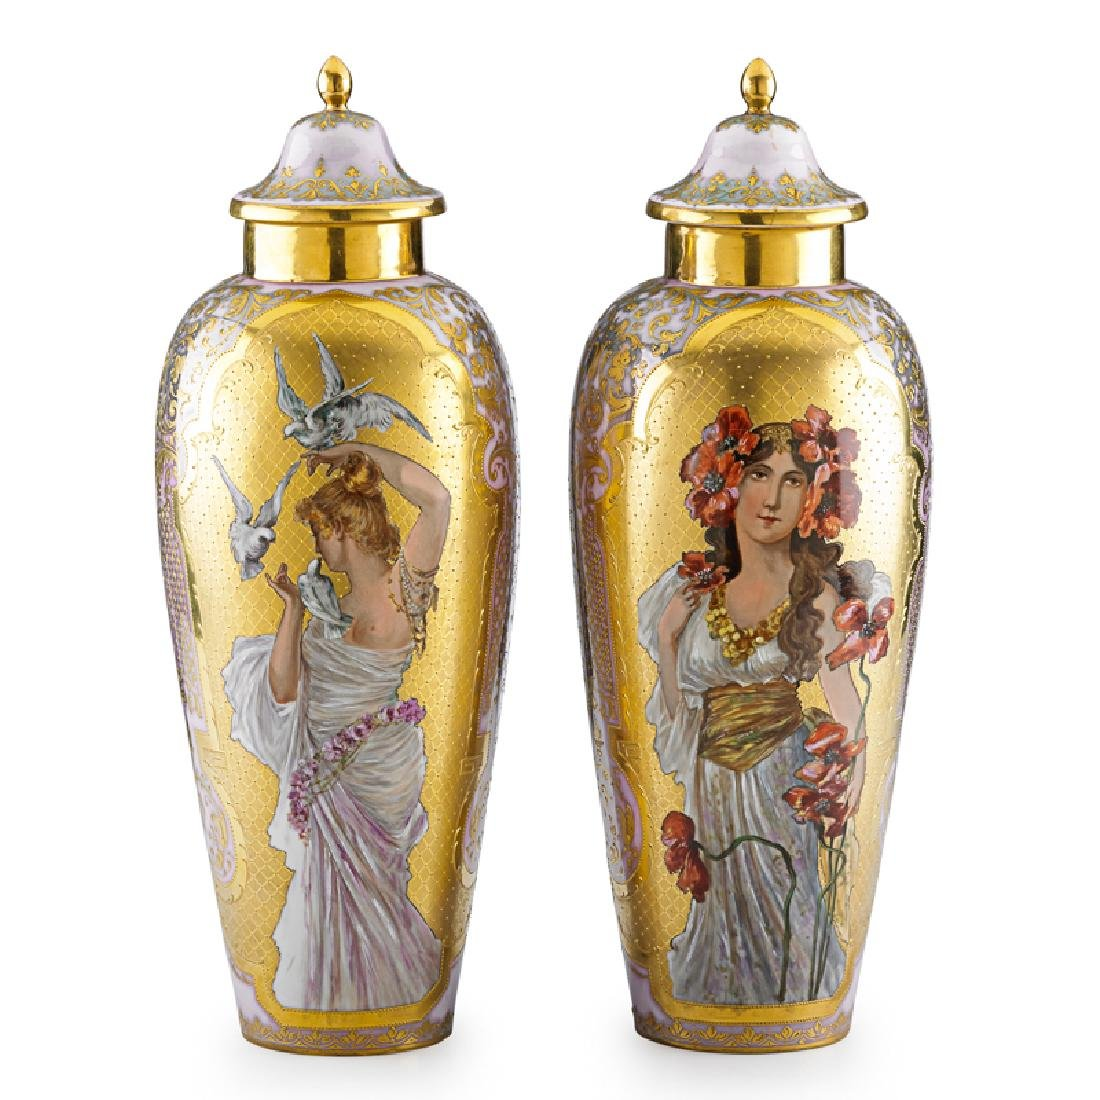 PAIR OF VIENNA STYLE PORCELAIN COVERED URNS